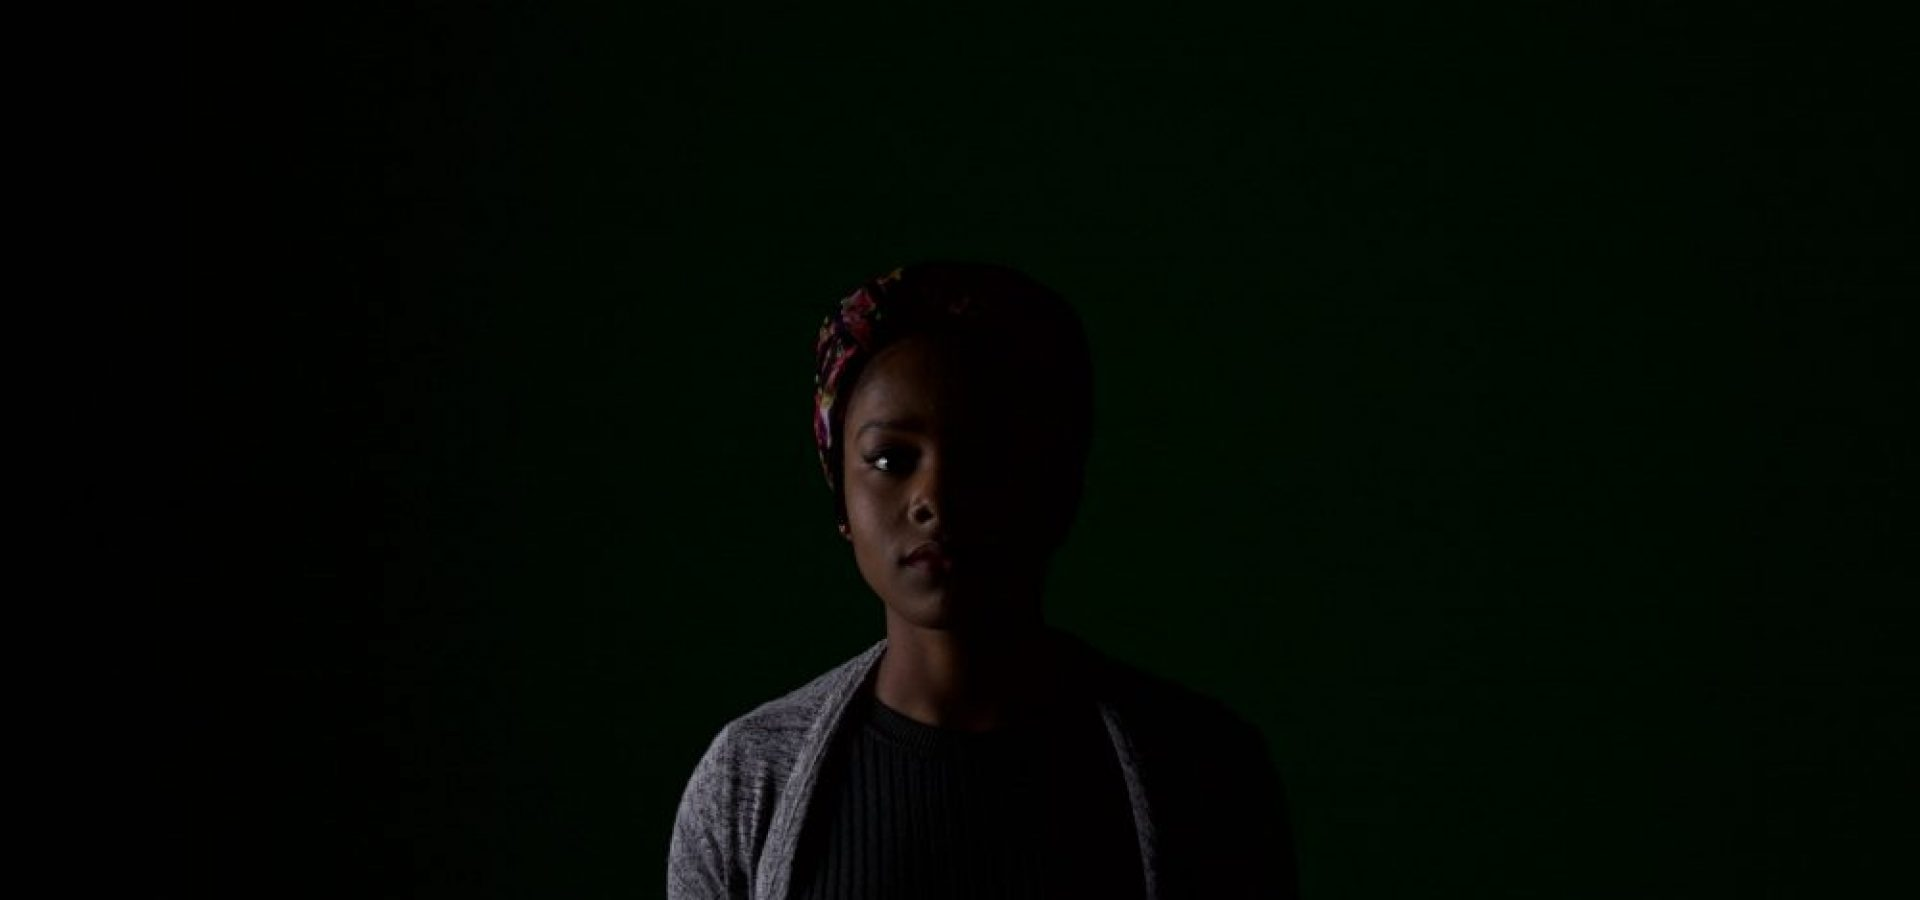 Half of woman hidden by darkness. Captures the feeling of single sided deafness